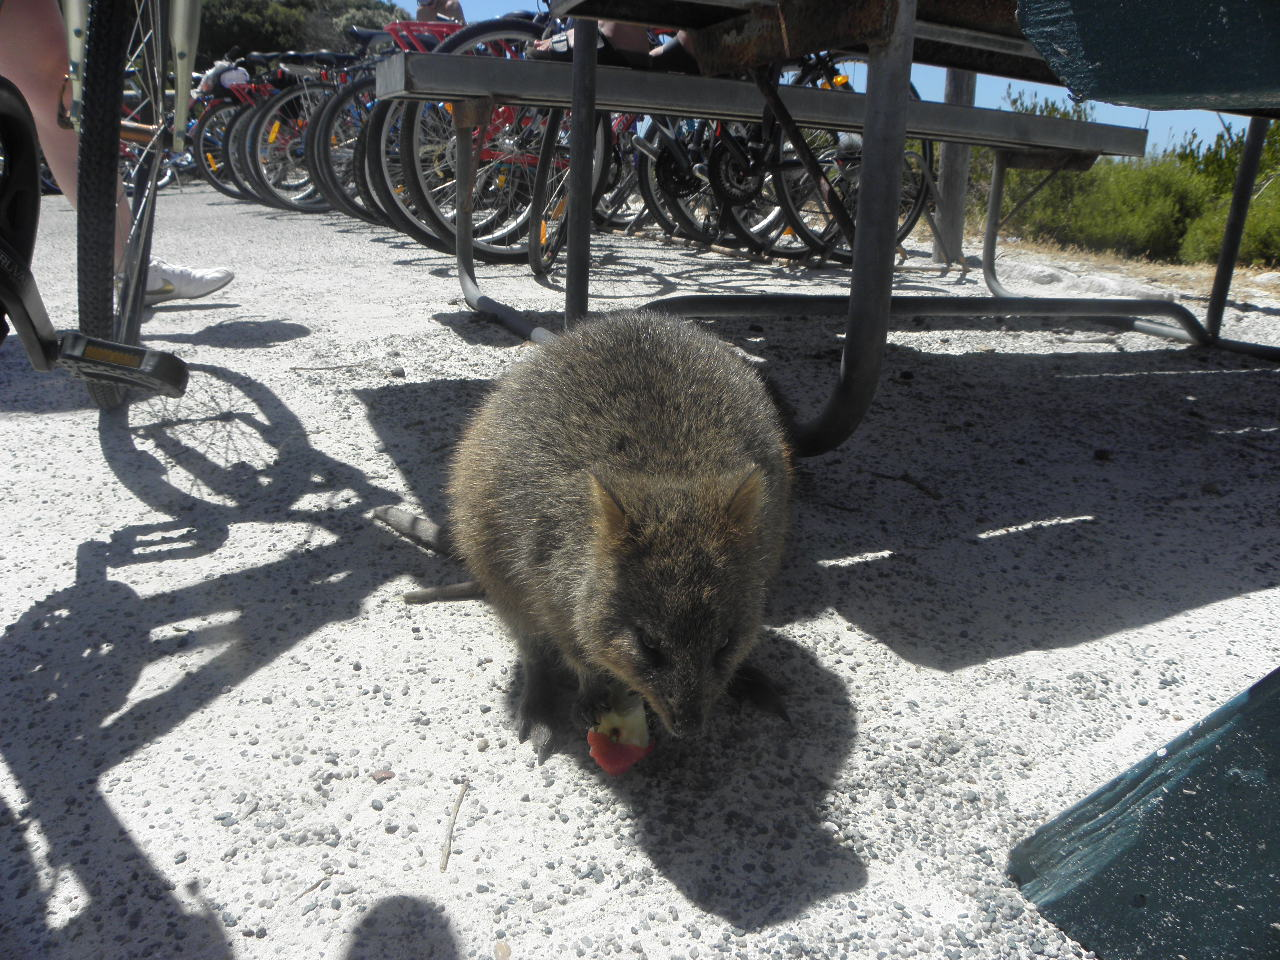 The island is full of quokkas.